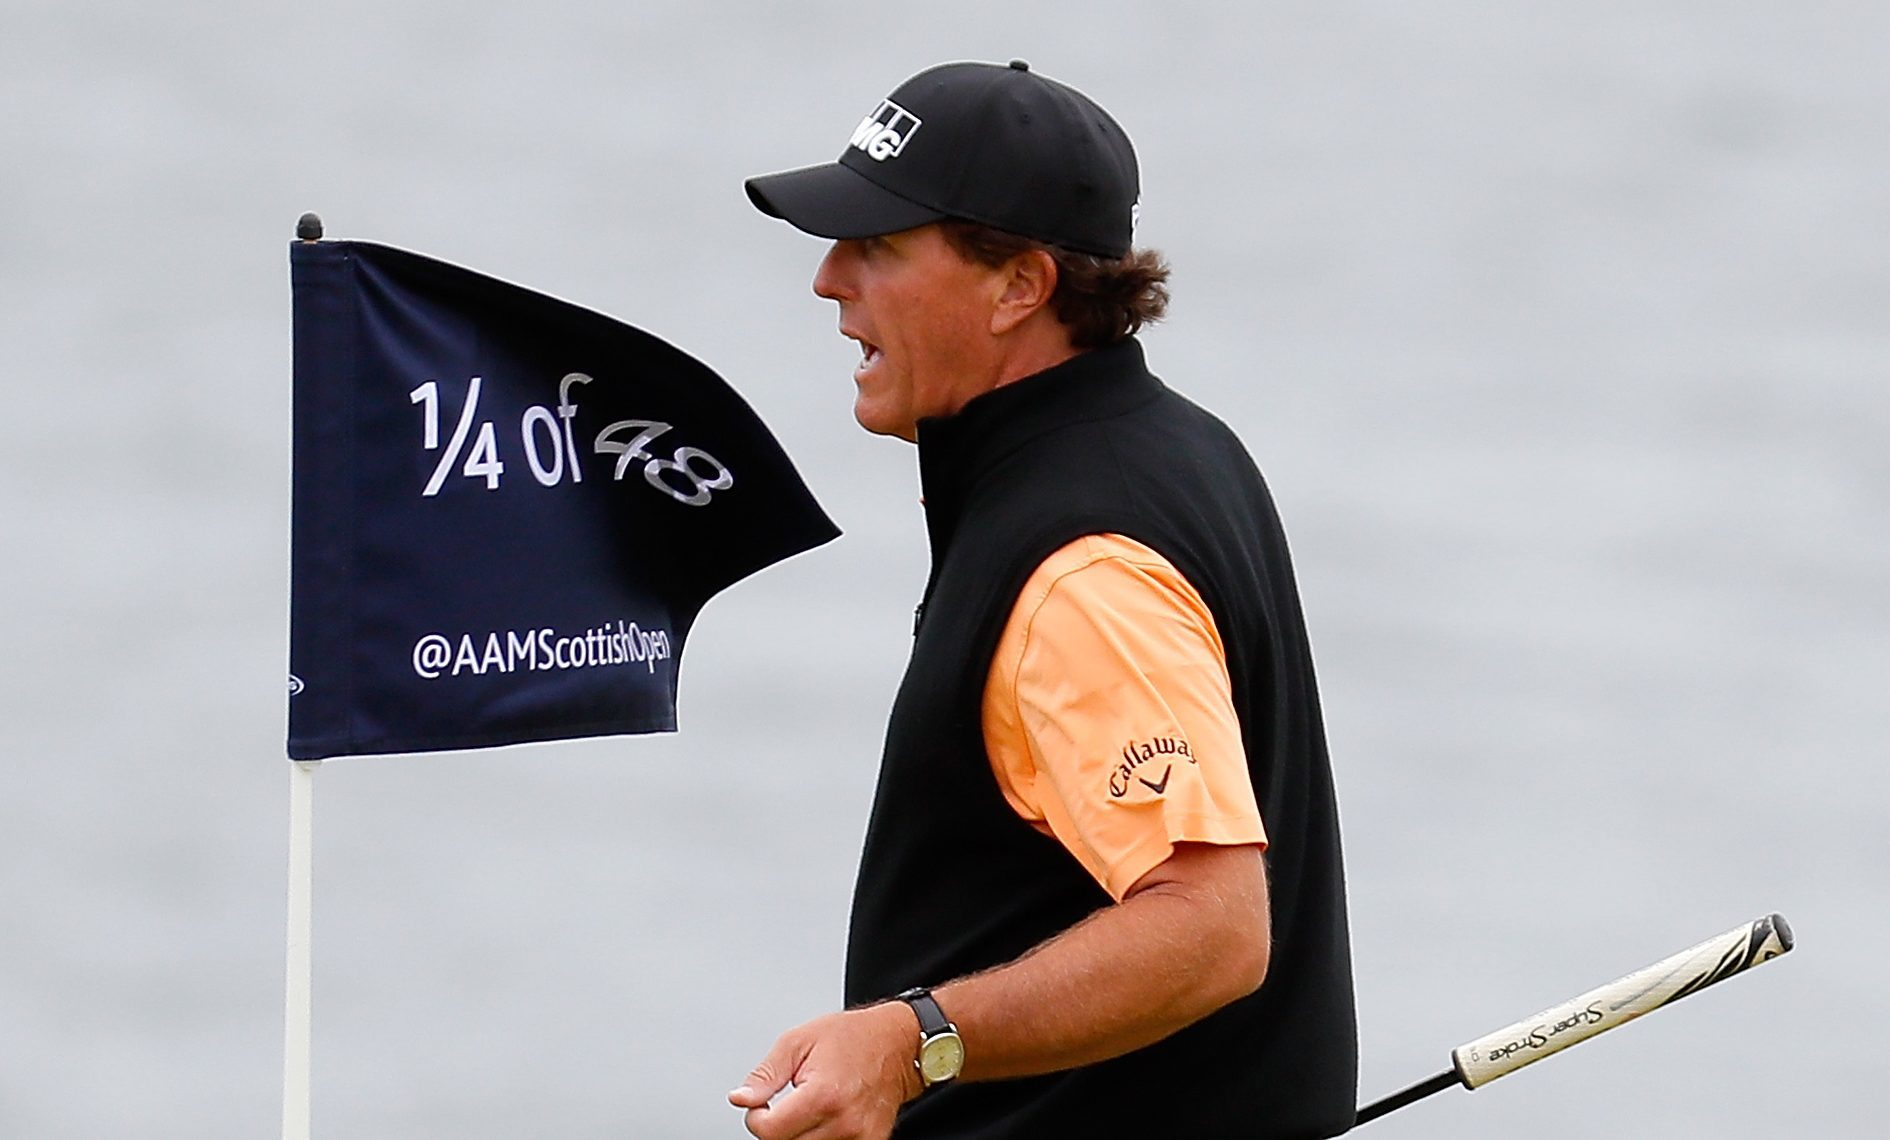 Phil Mickelson practising ahead of the Scottish Open at Castle Stuart.